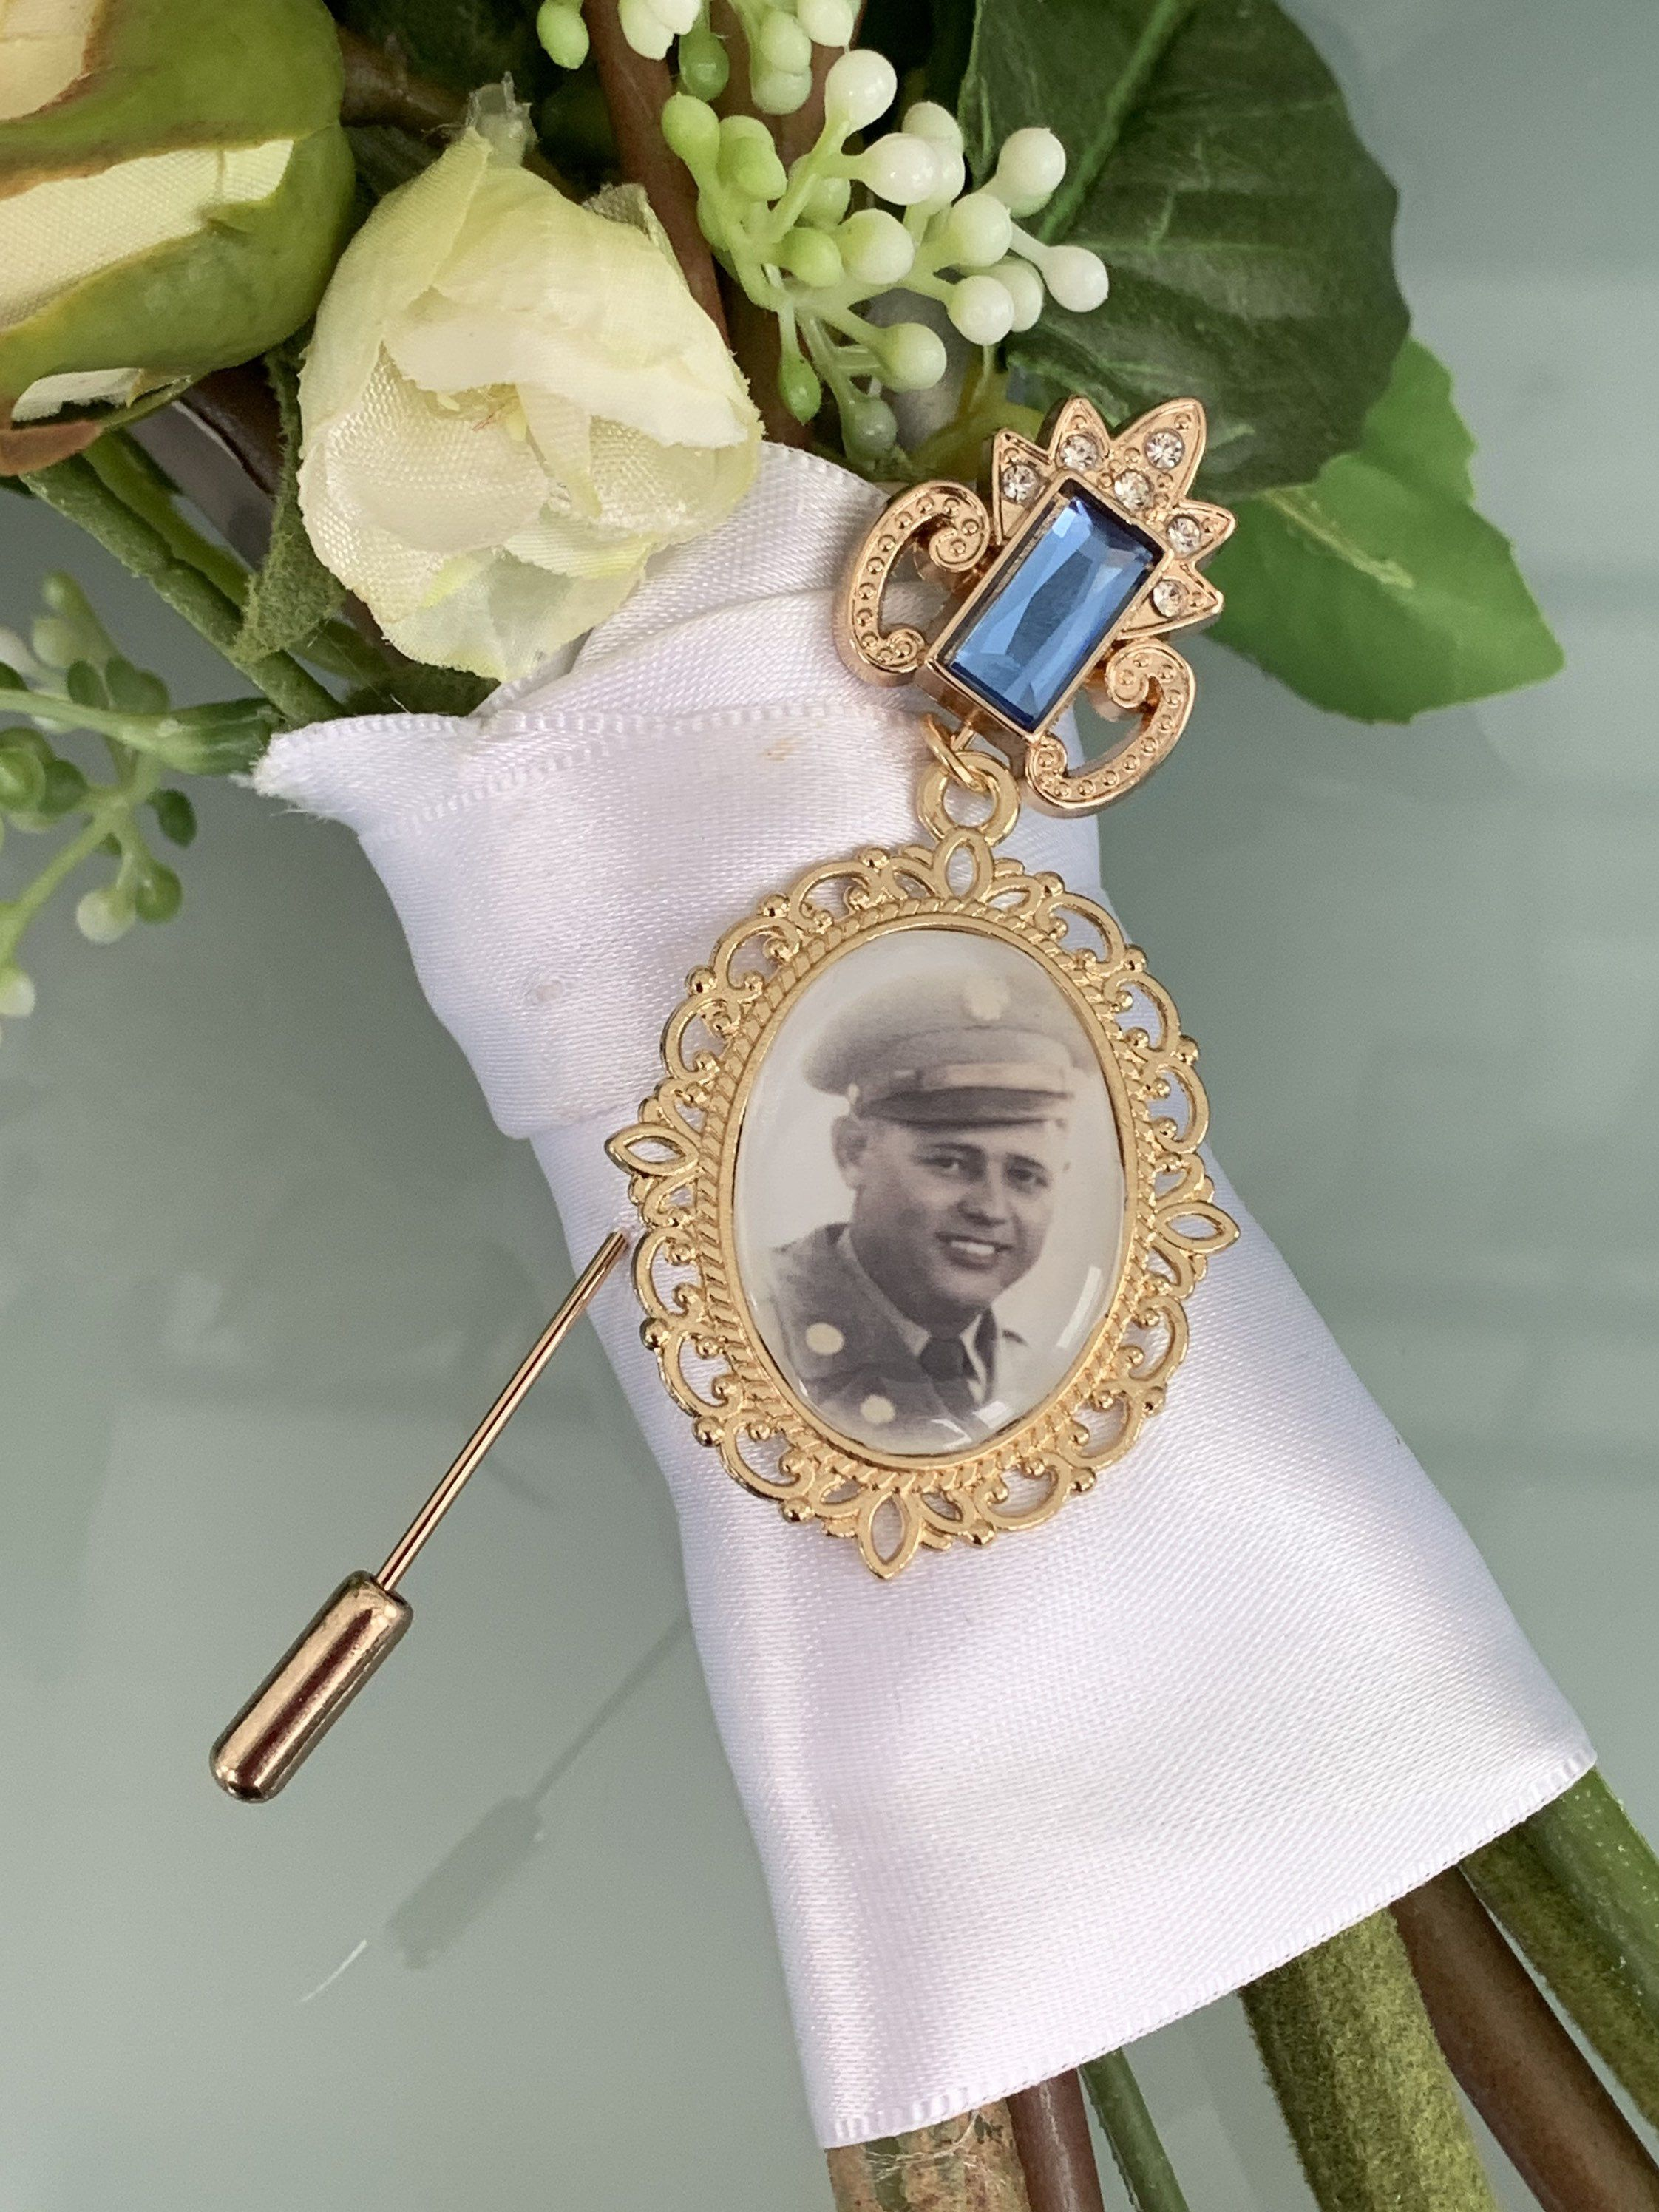 Custom Wedding Something Blue photo Memory charm  to attach to bride bouquet Gift for wedding bridal shower Remembering Loved ones